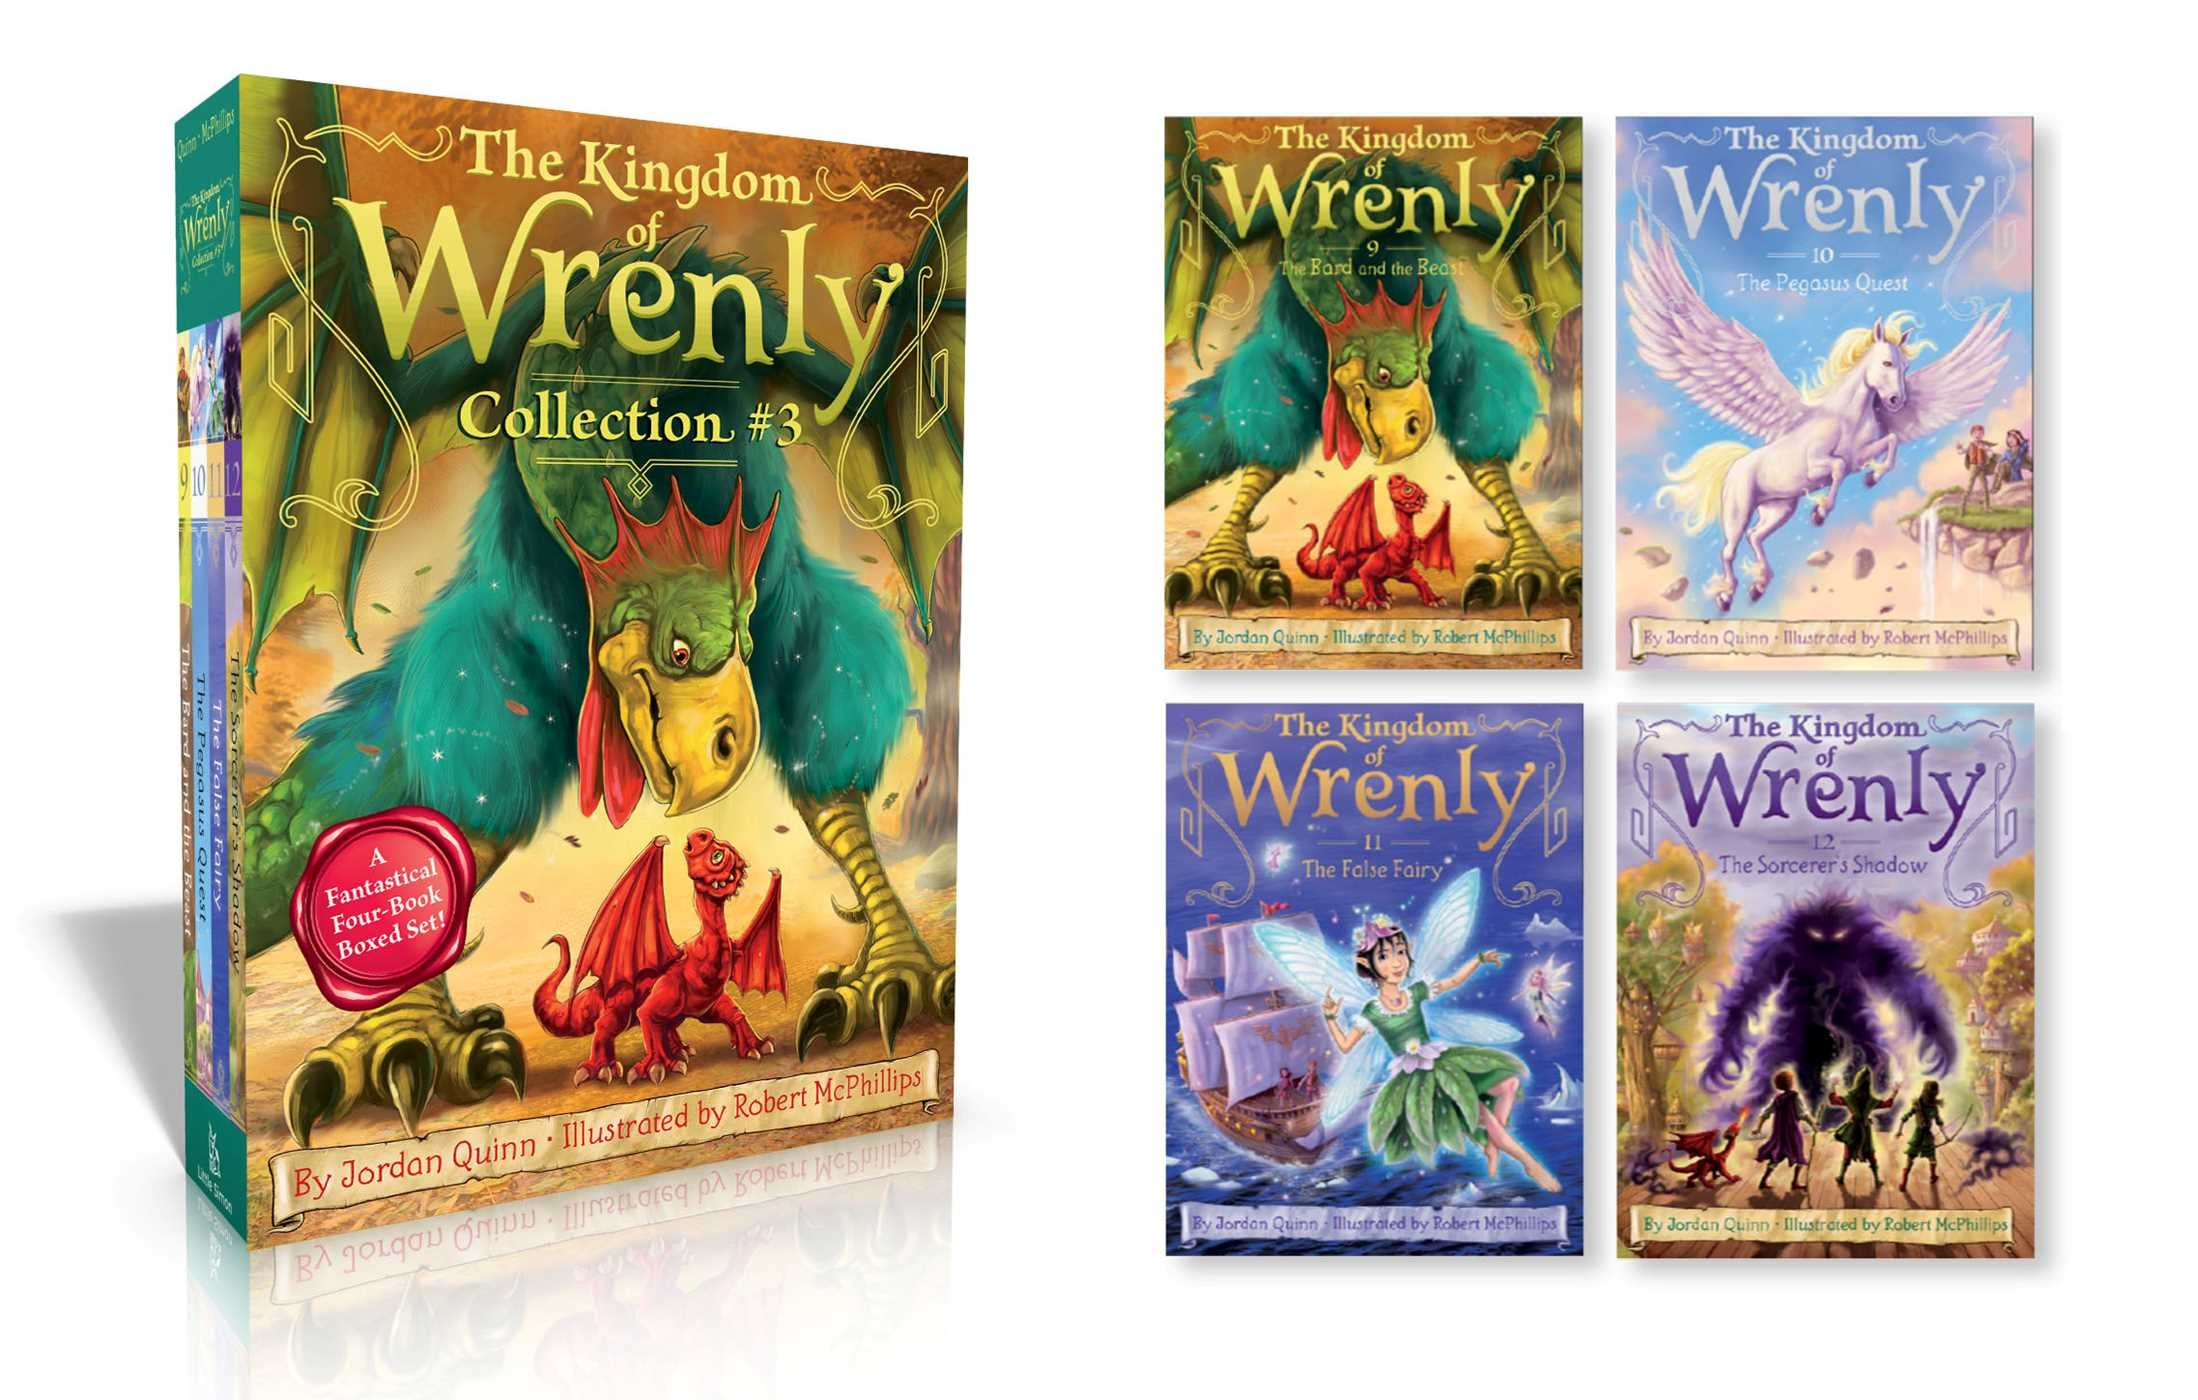 The kingdom of wrenly collection 3 9781534409187.in01